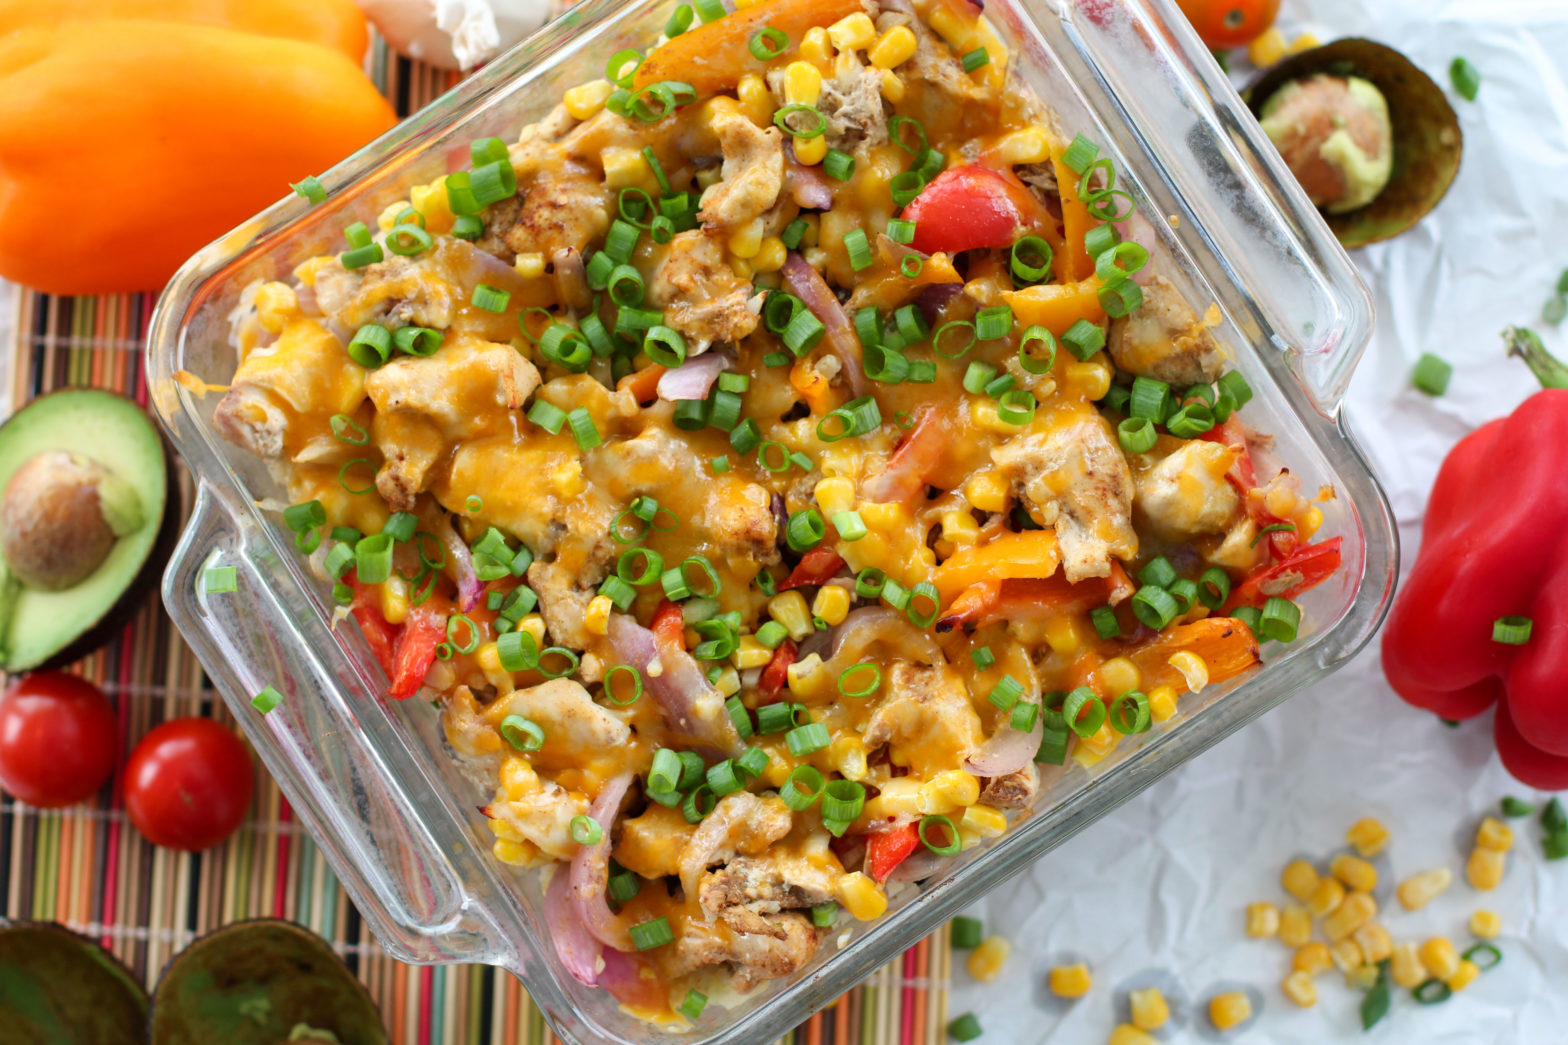 Healthy Chicken Fajita Casserole surrounded by veggies